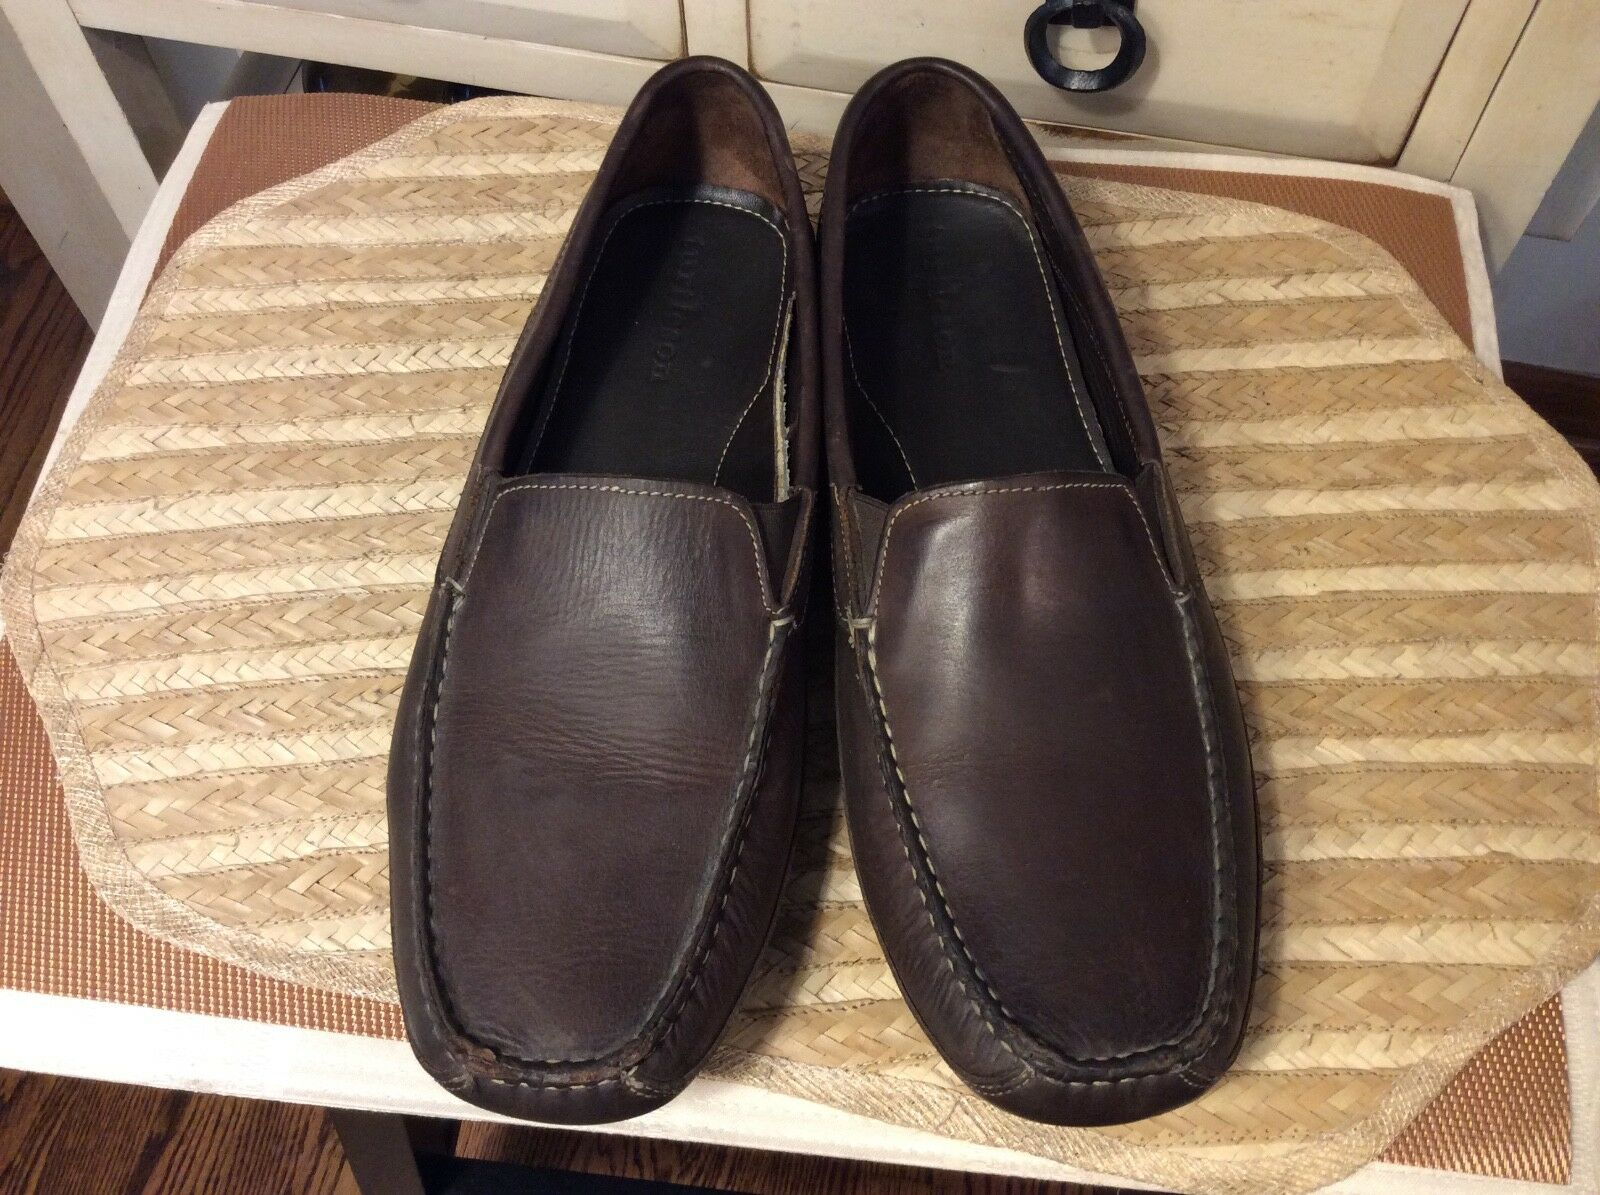 TURTLESON 10580736 herren braun LEATHER LEATHER LEATHER DRIVING slip on LOAFERS Größe 12 41d143